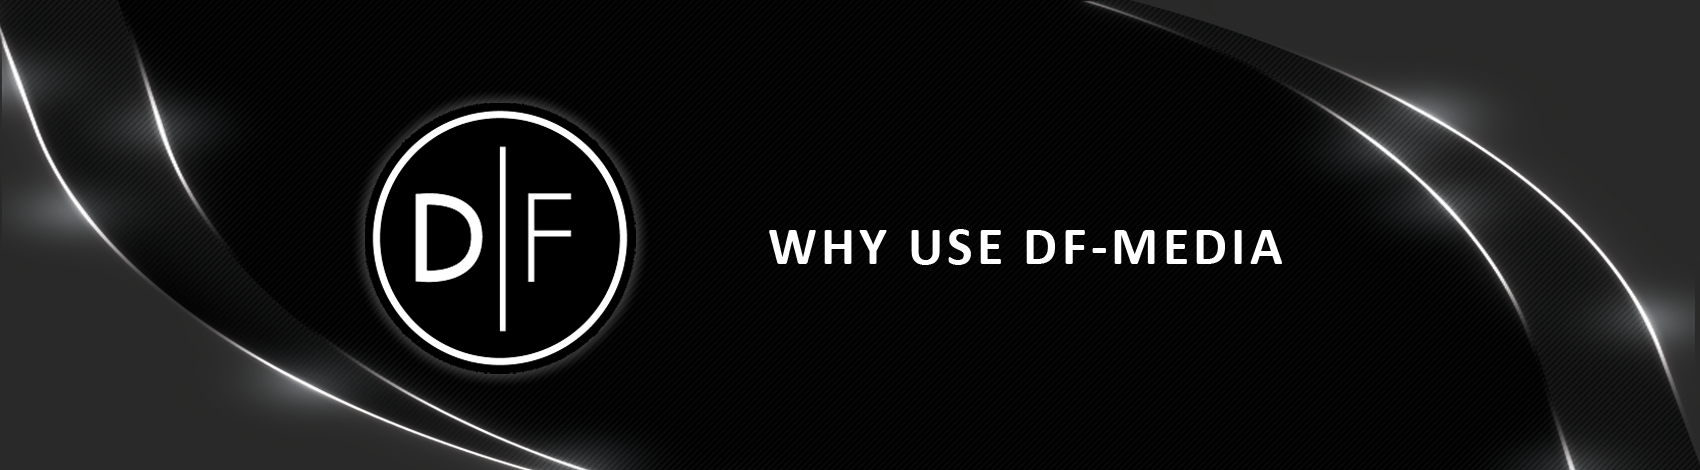 Why Use DF-Media